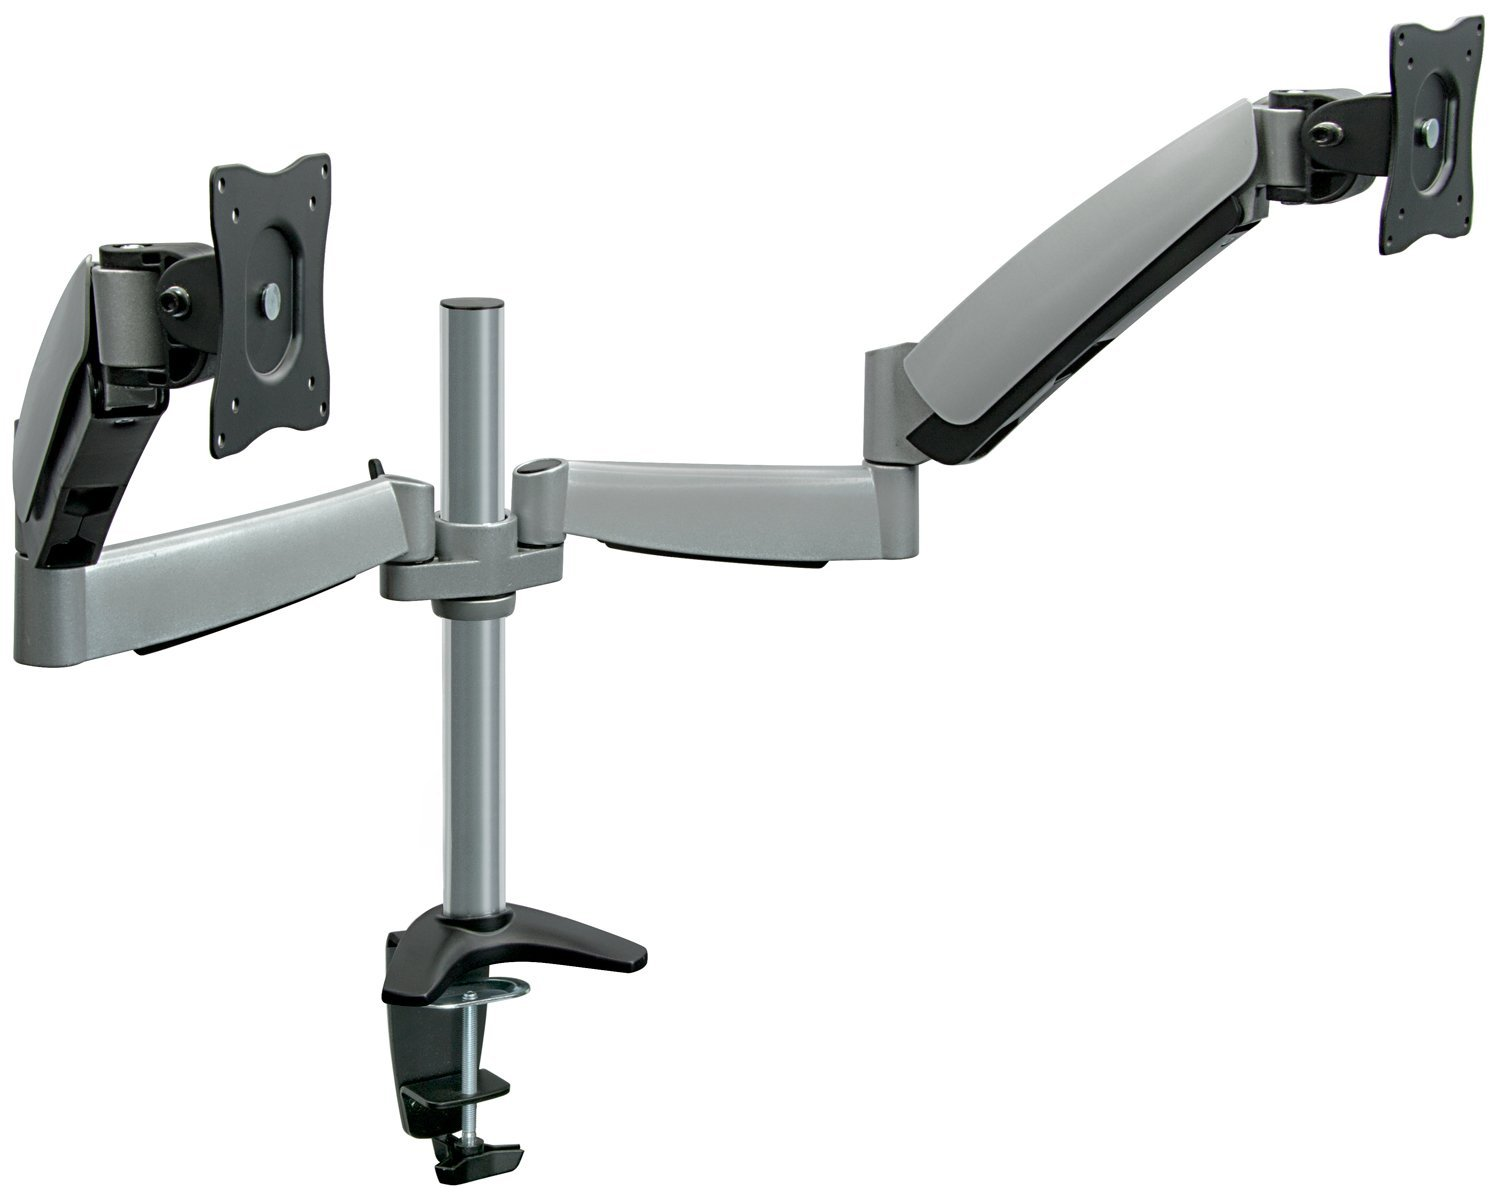 Ergonomic Dual Adjustable Monitor Arm Wall Mount Guide